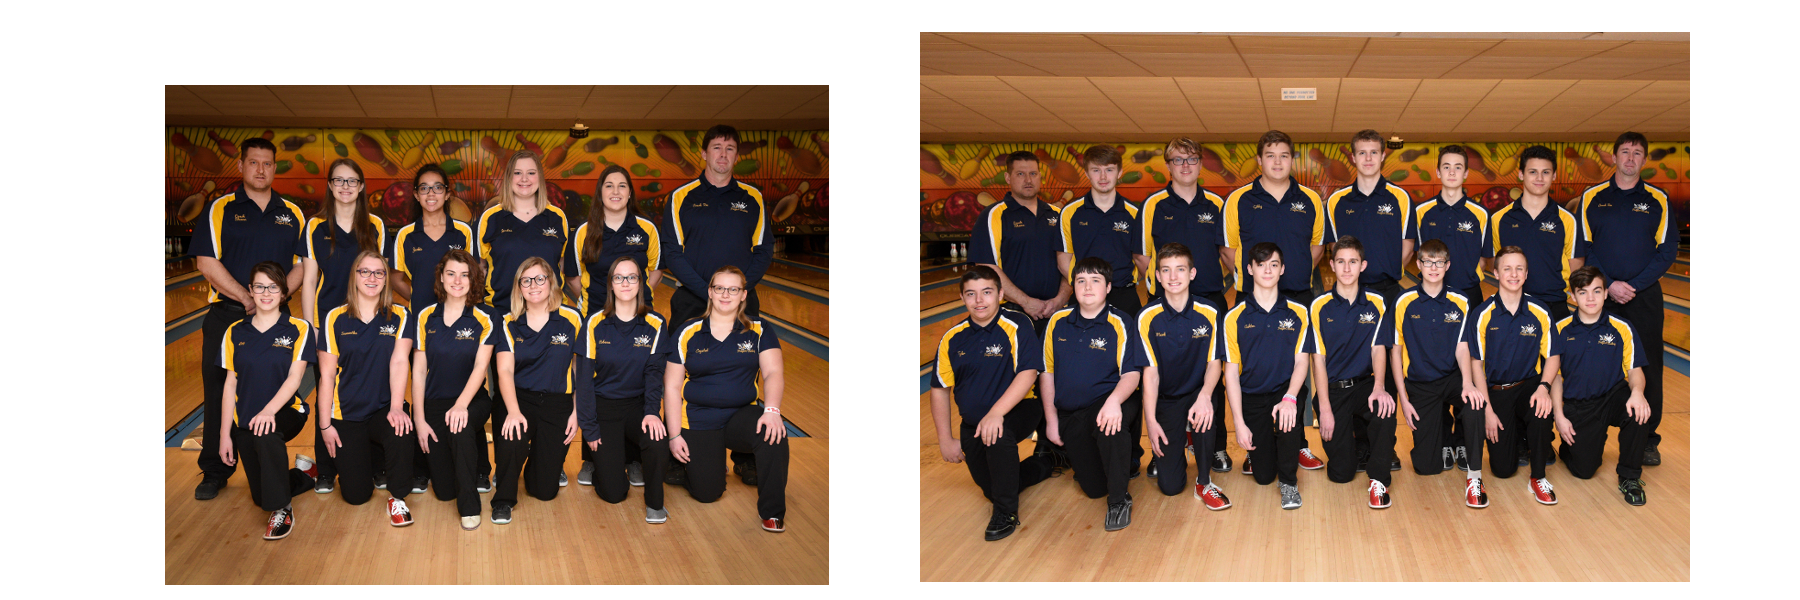 Bowling Teams - Girls and Boys